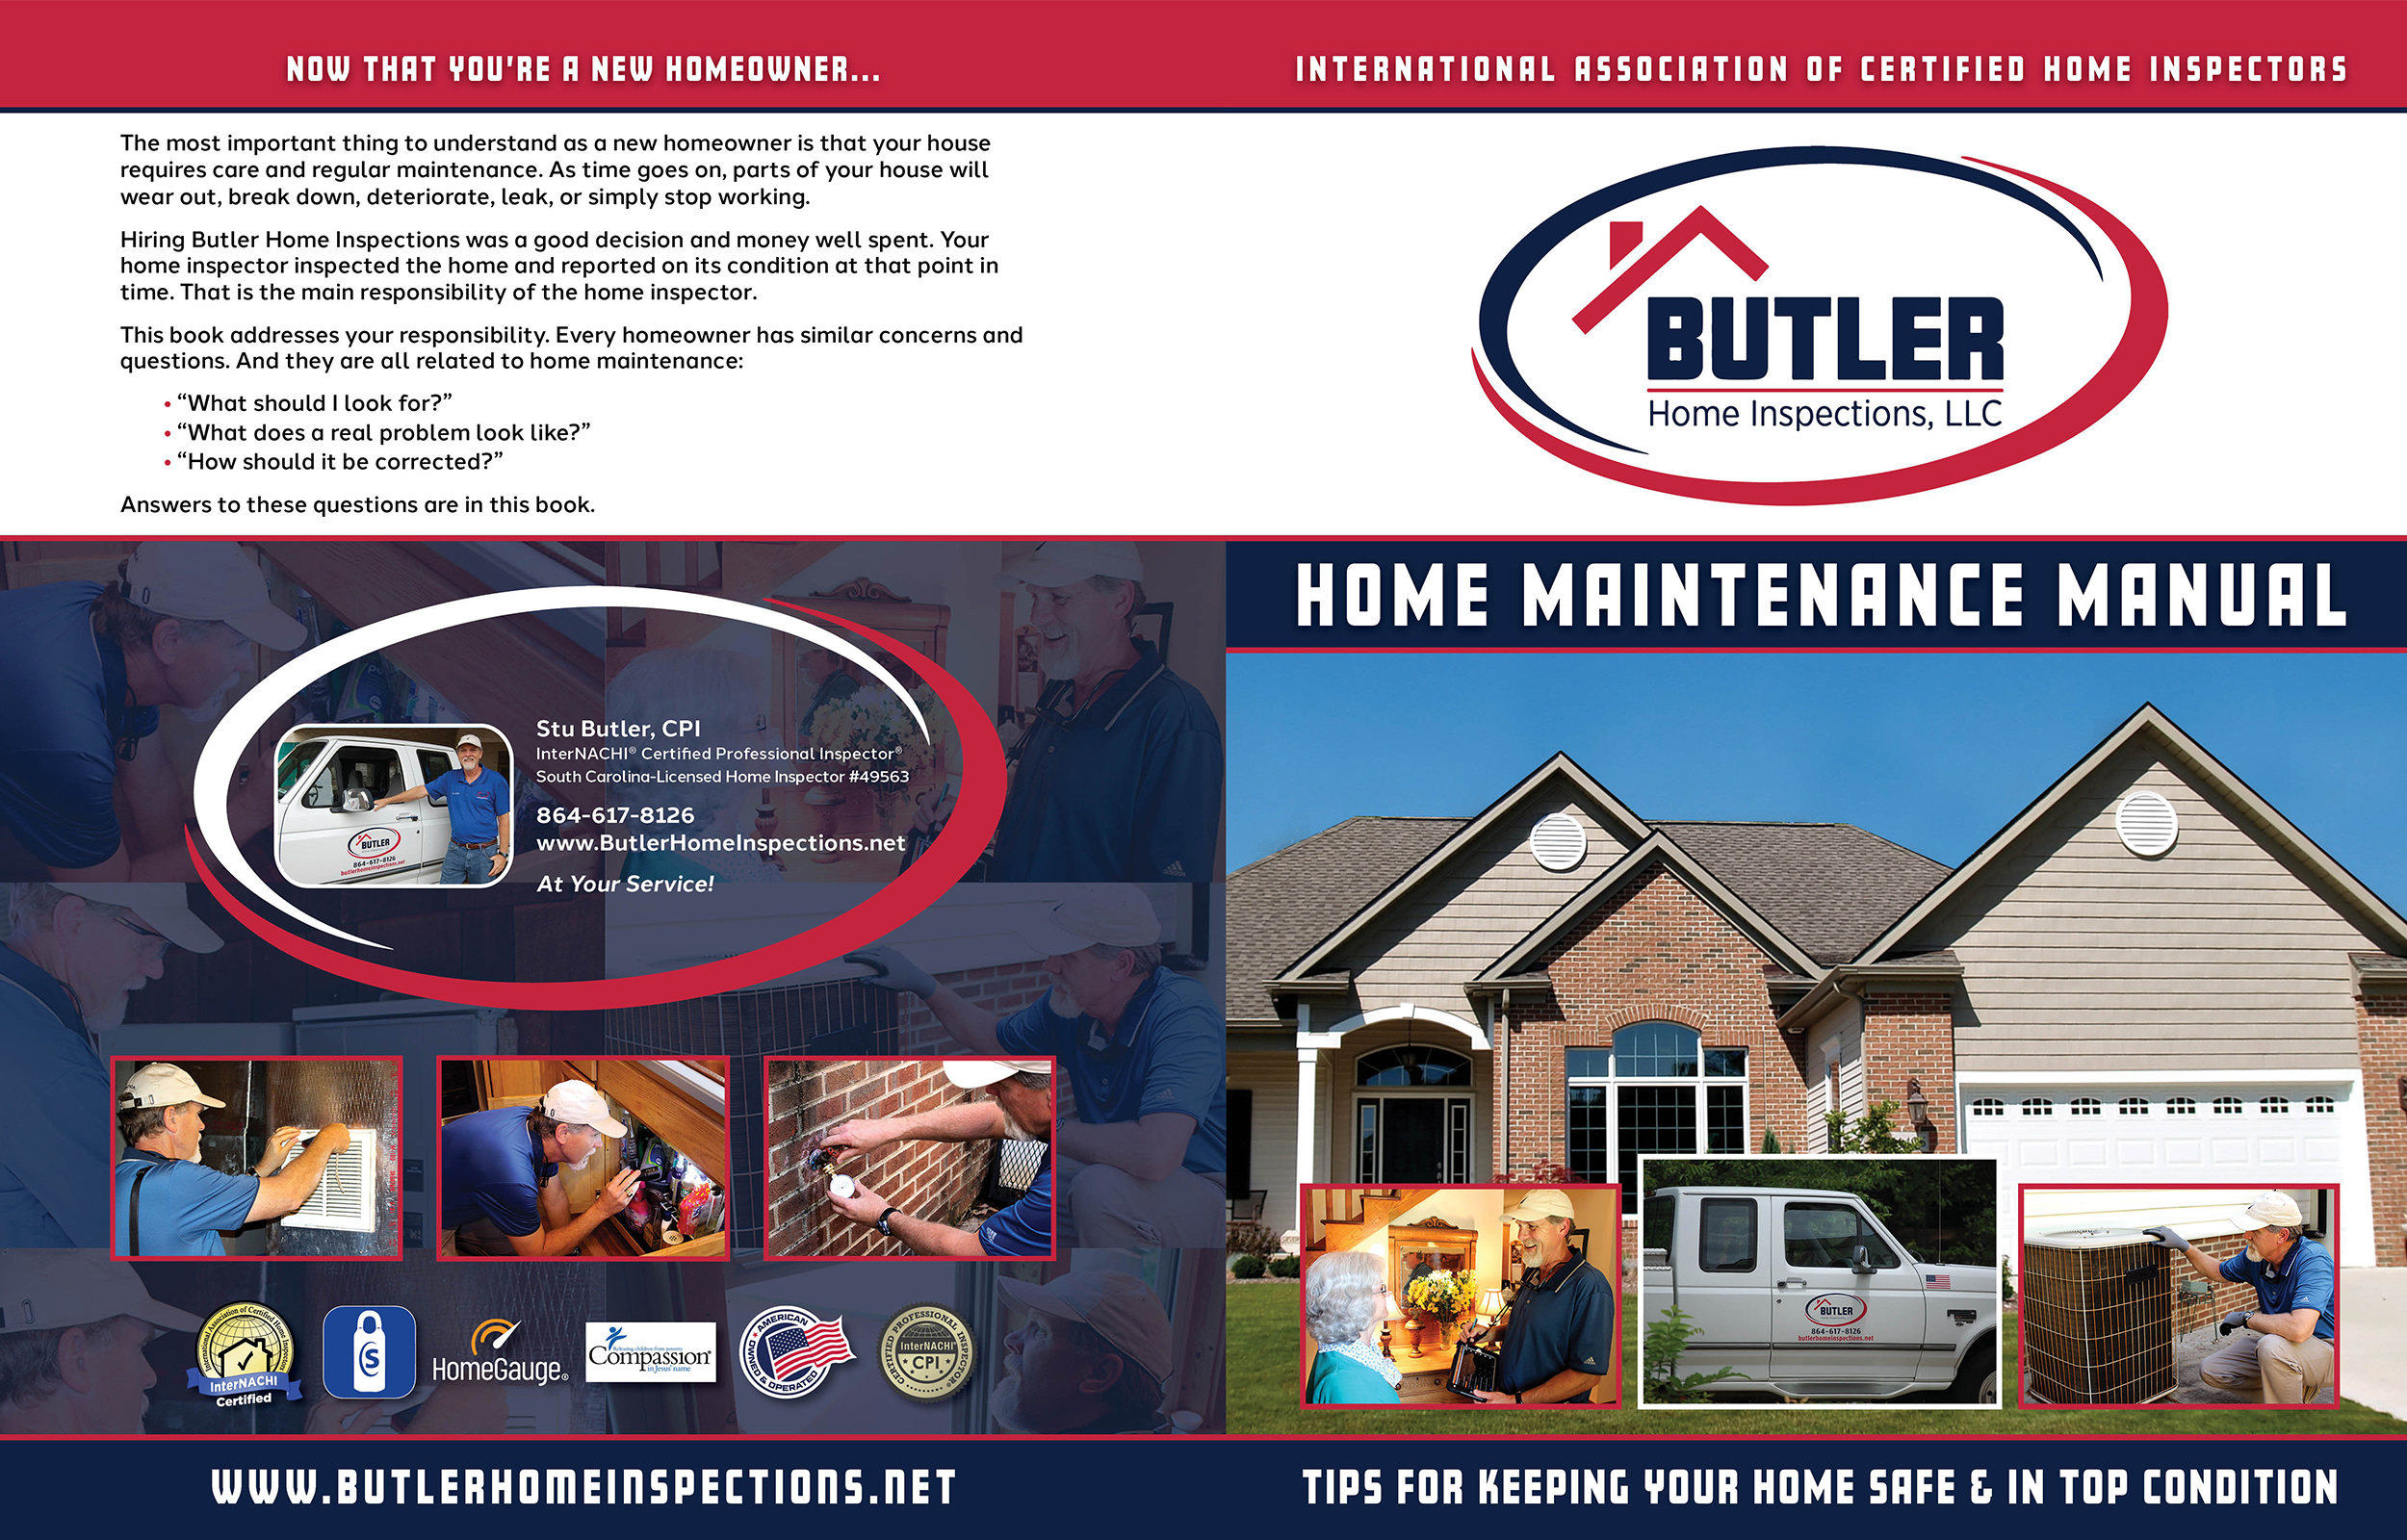 Custom Home Maintenance Book for Butler Home Inspections